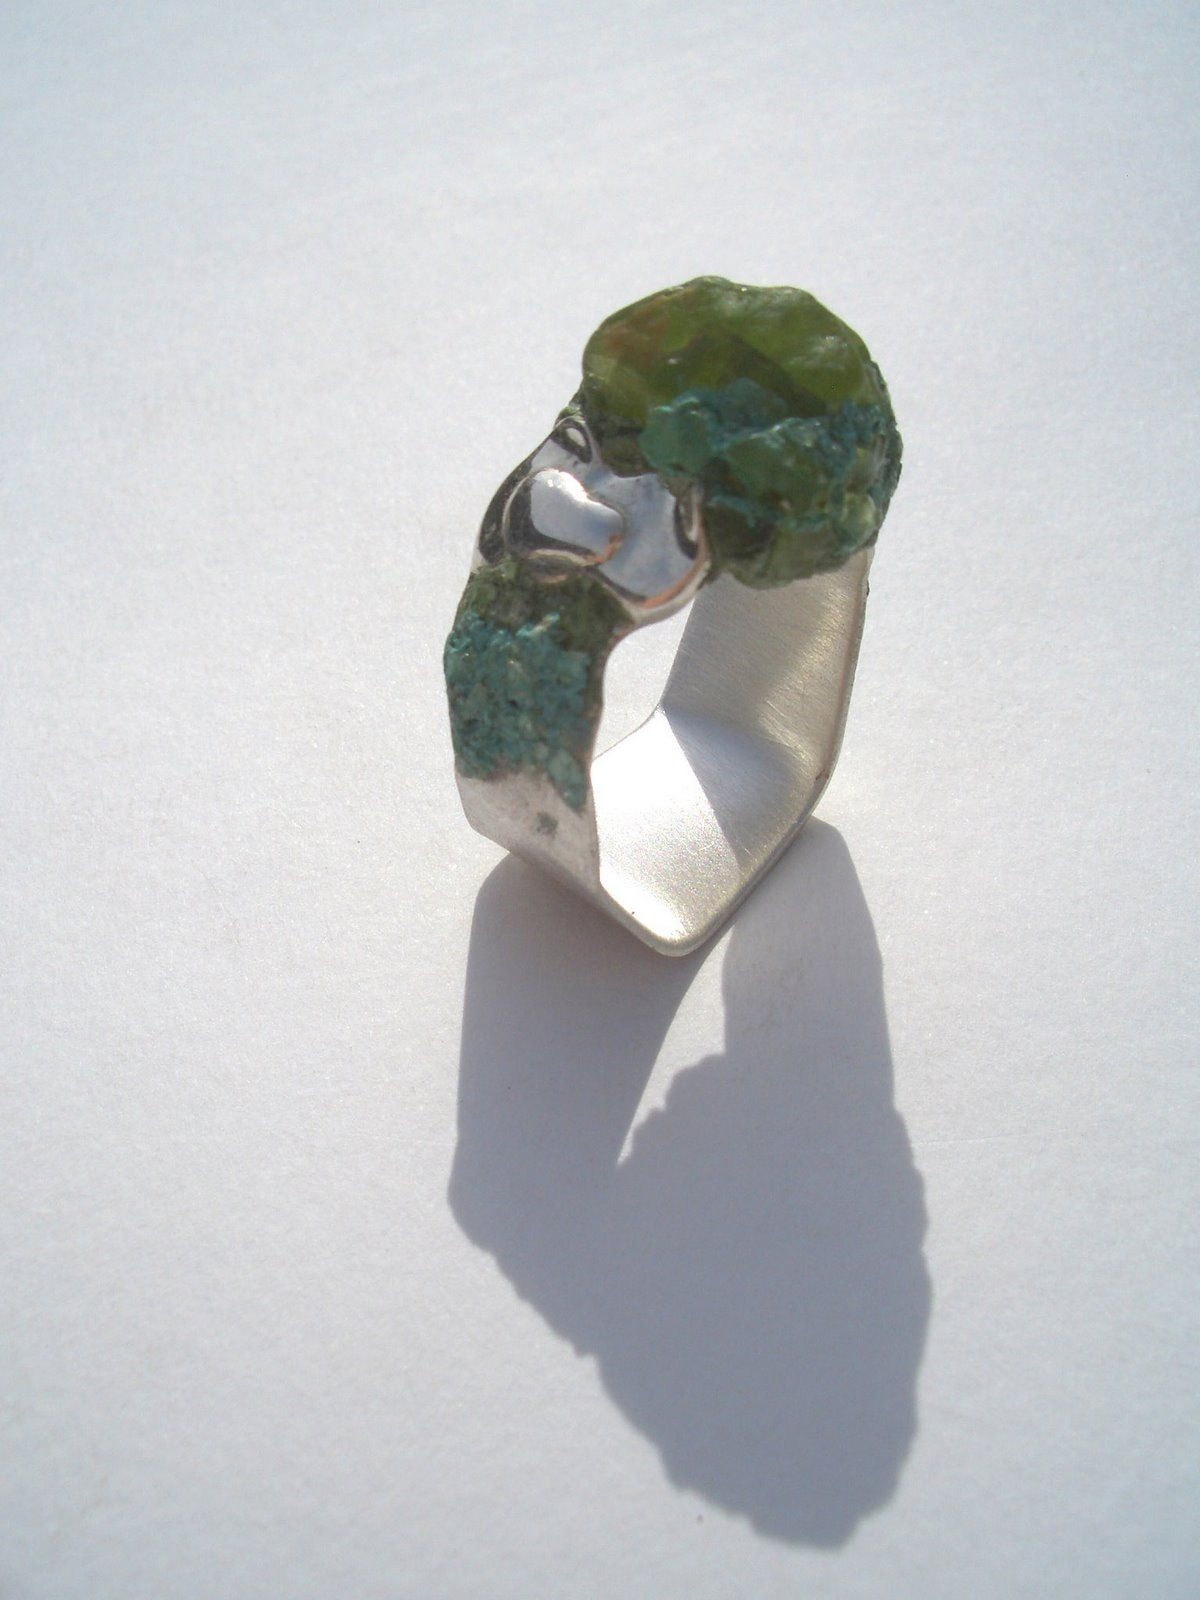 Paul Beelen Contemporary jewelry design